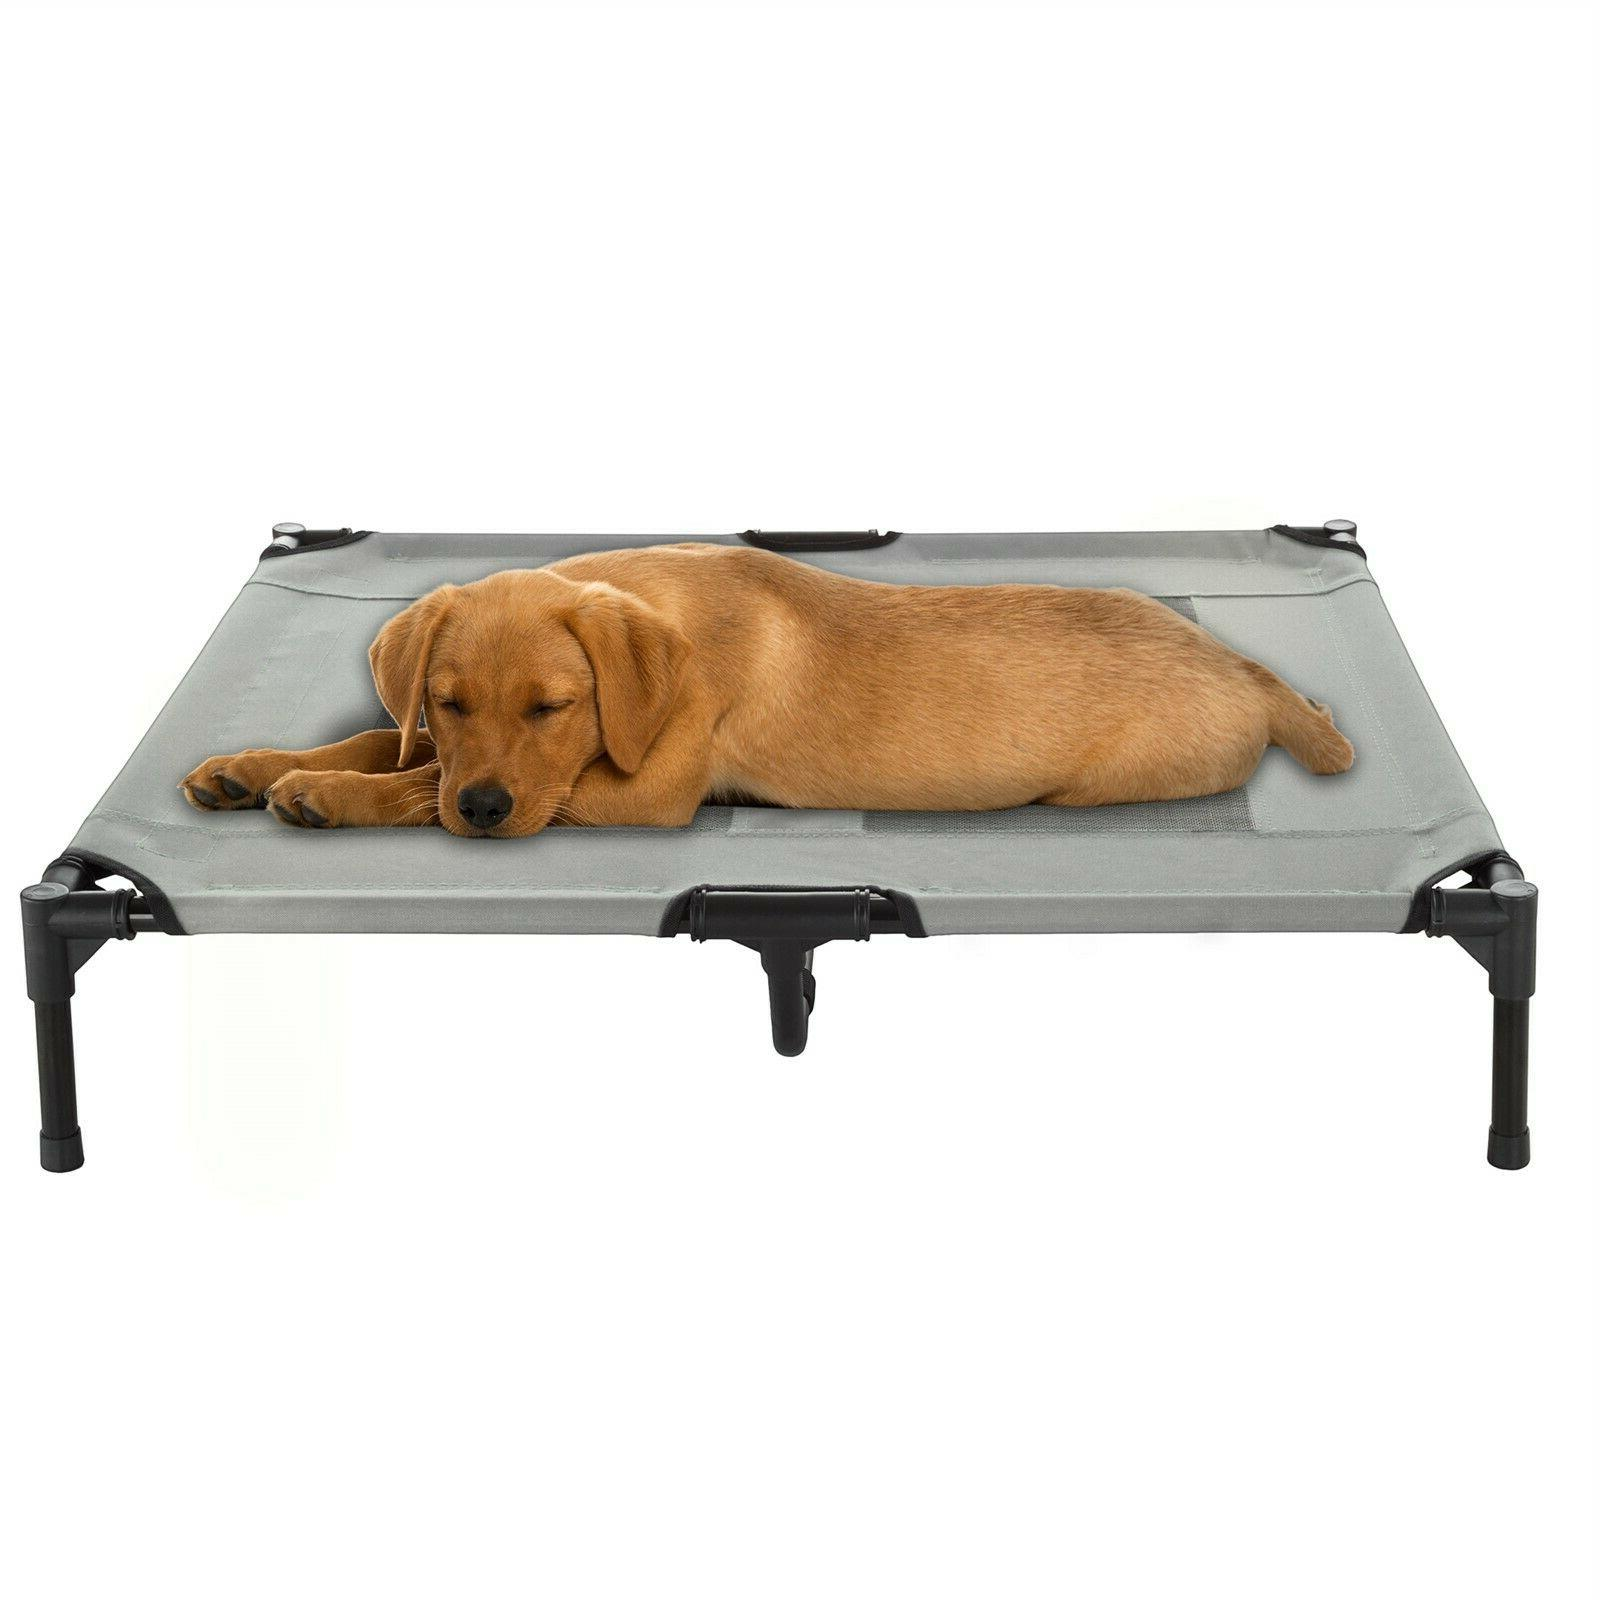 med large dog bed indoor outdoor raised